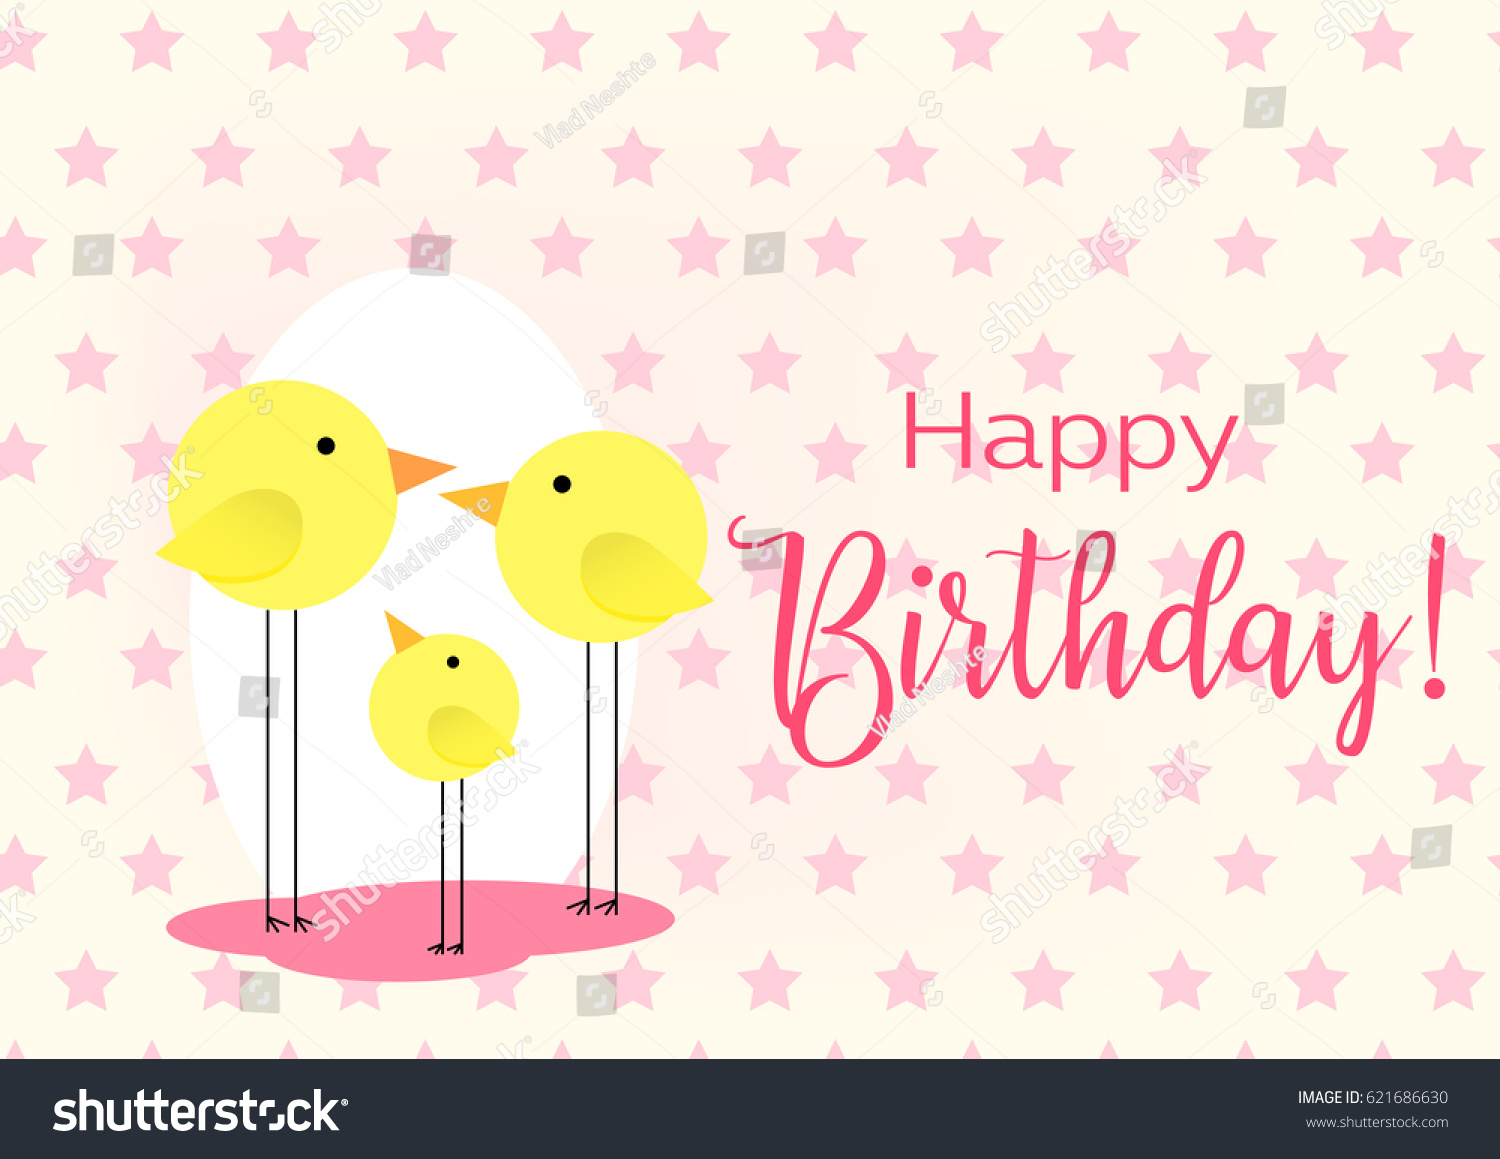 Birthday Greeting Card Drawing Family Birds Stock Vector Royalty